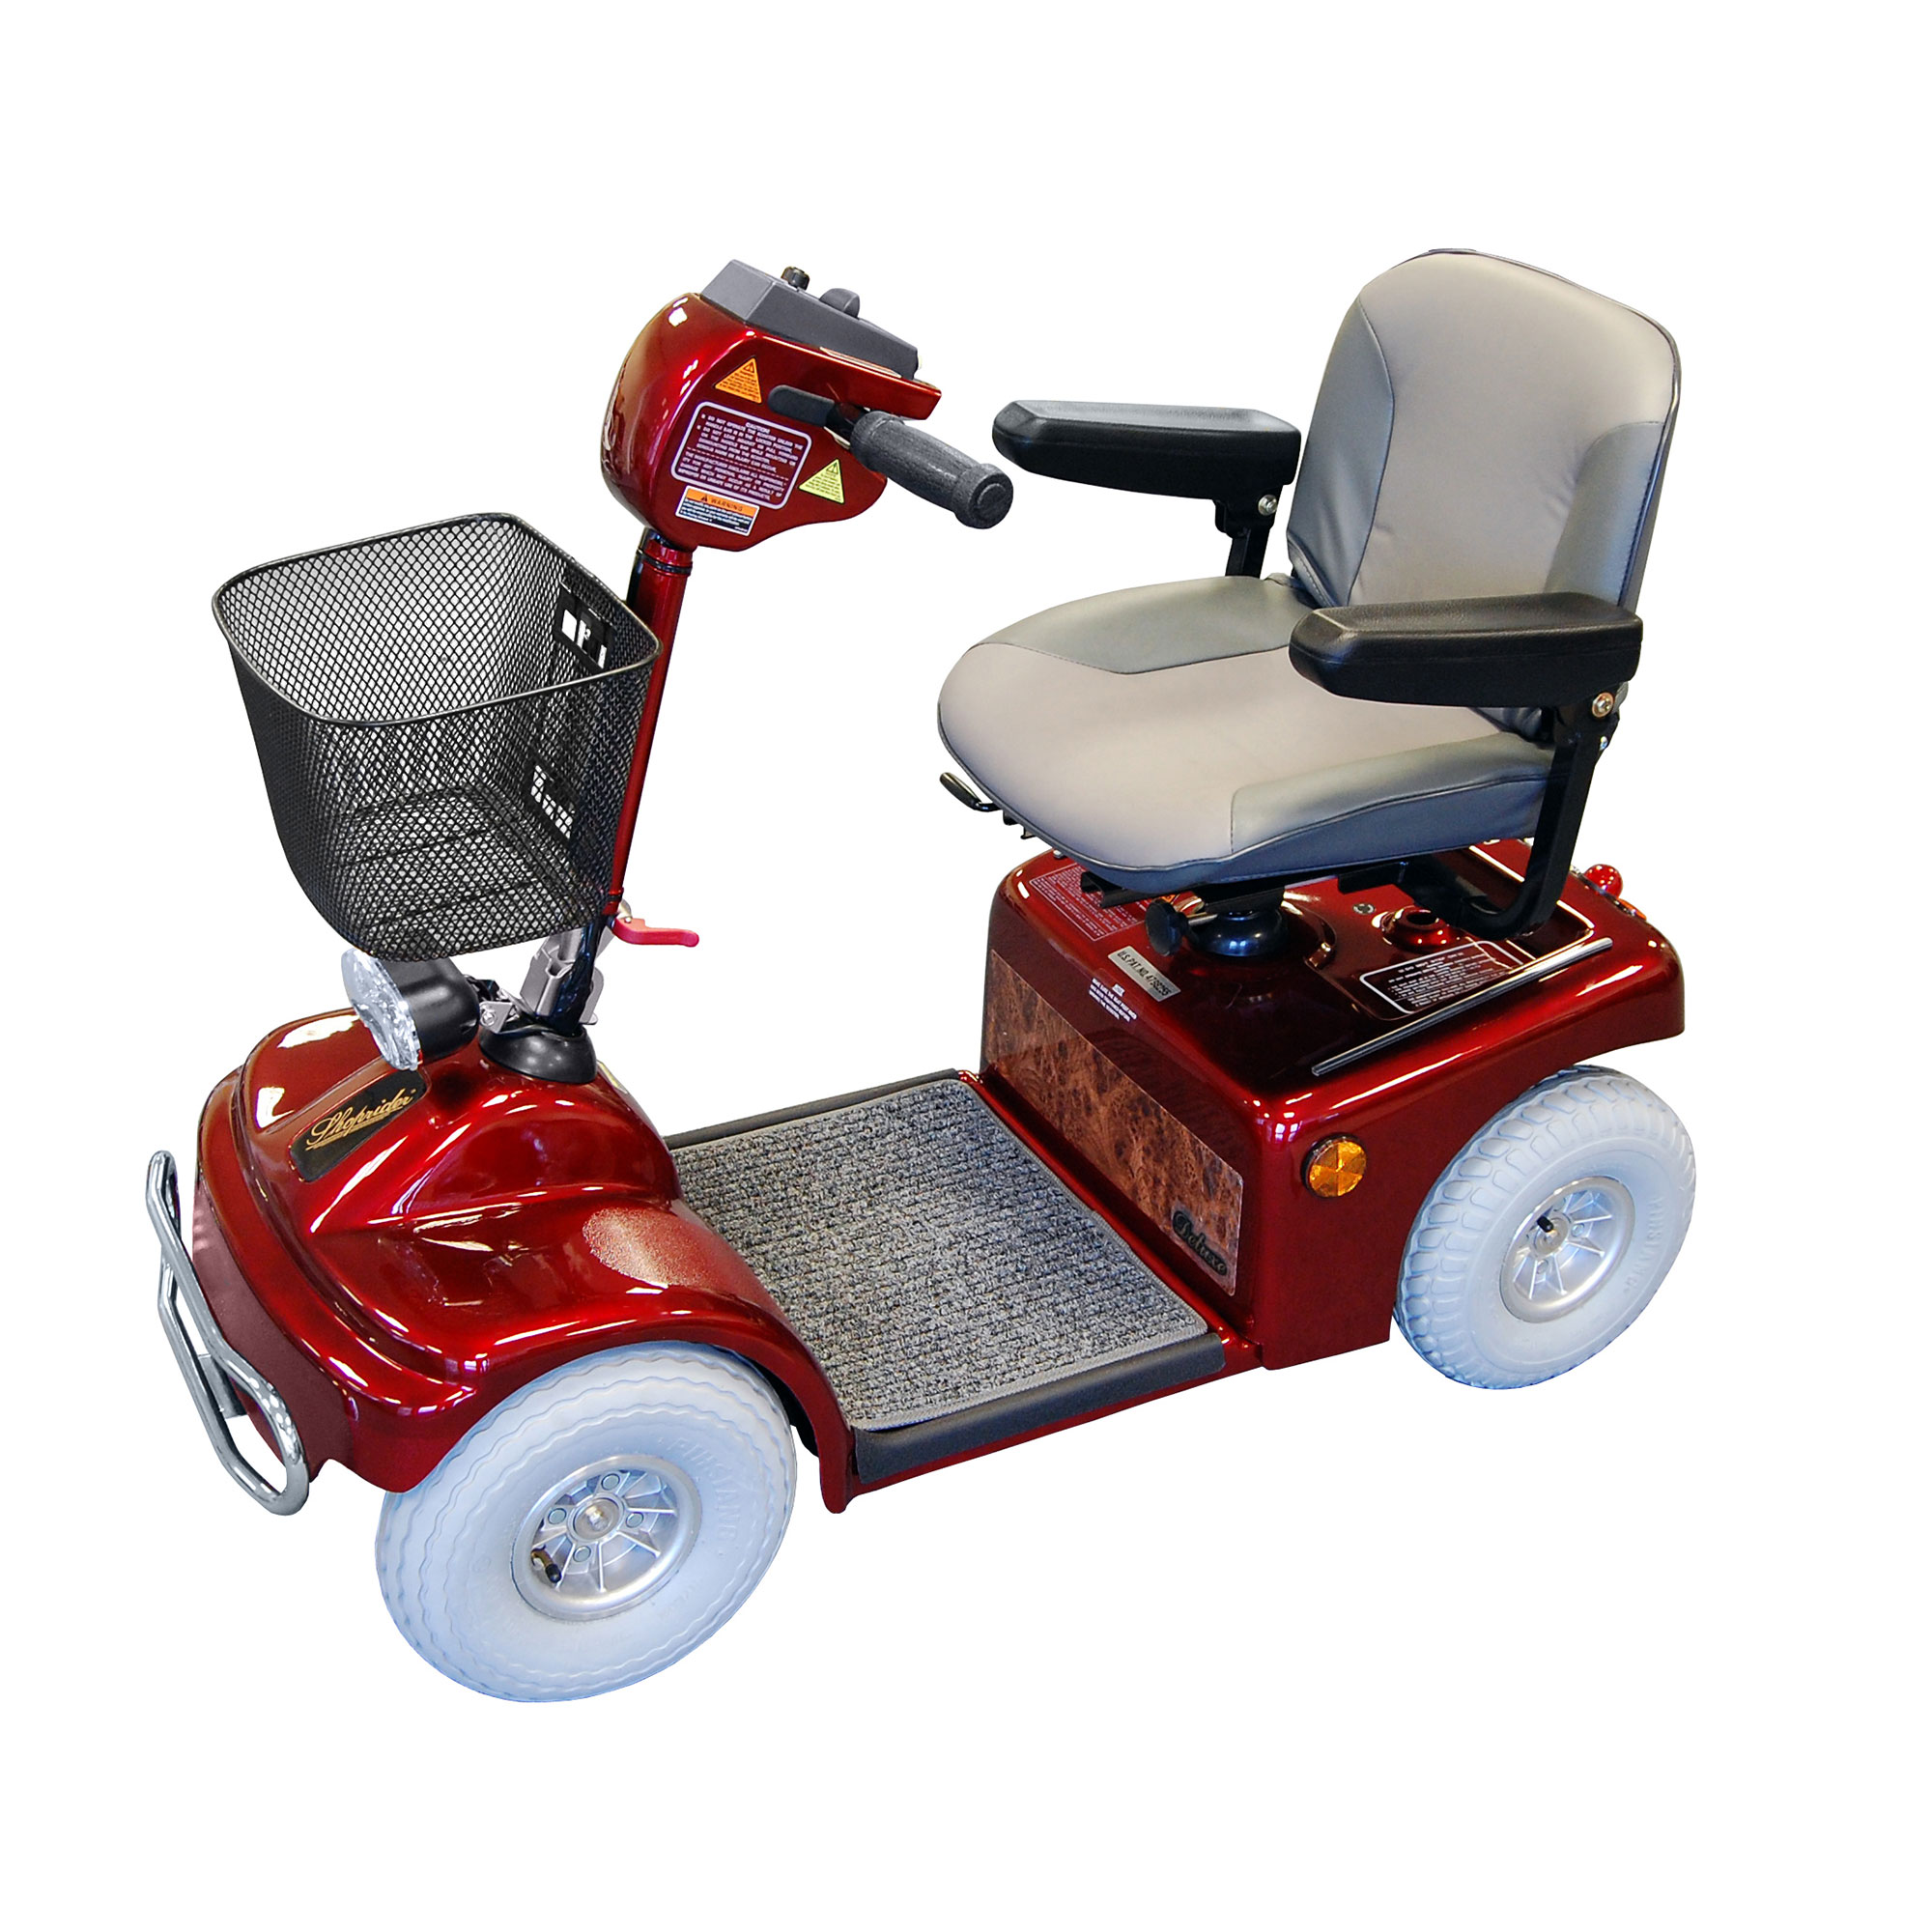 shoprider deluxe roma medical rh romamedical co uk Pride Mobility Scooter Used Sale Shoprider Owner's Manual